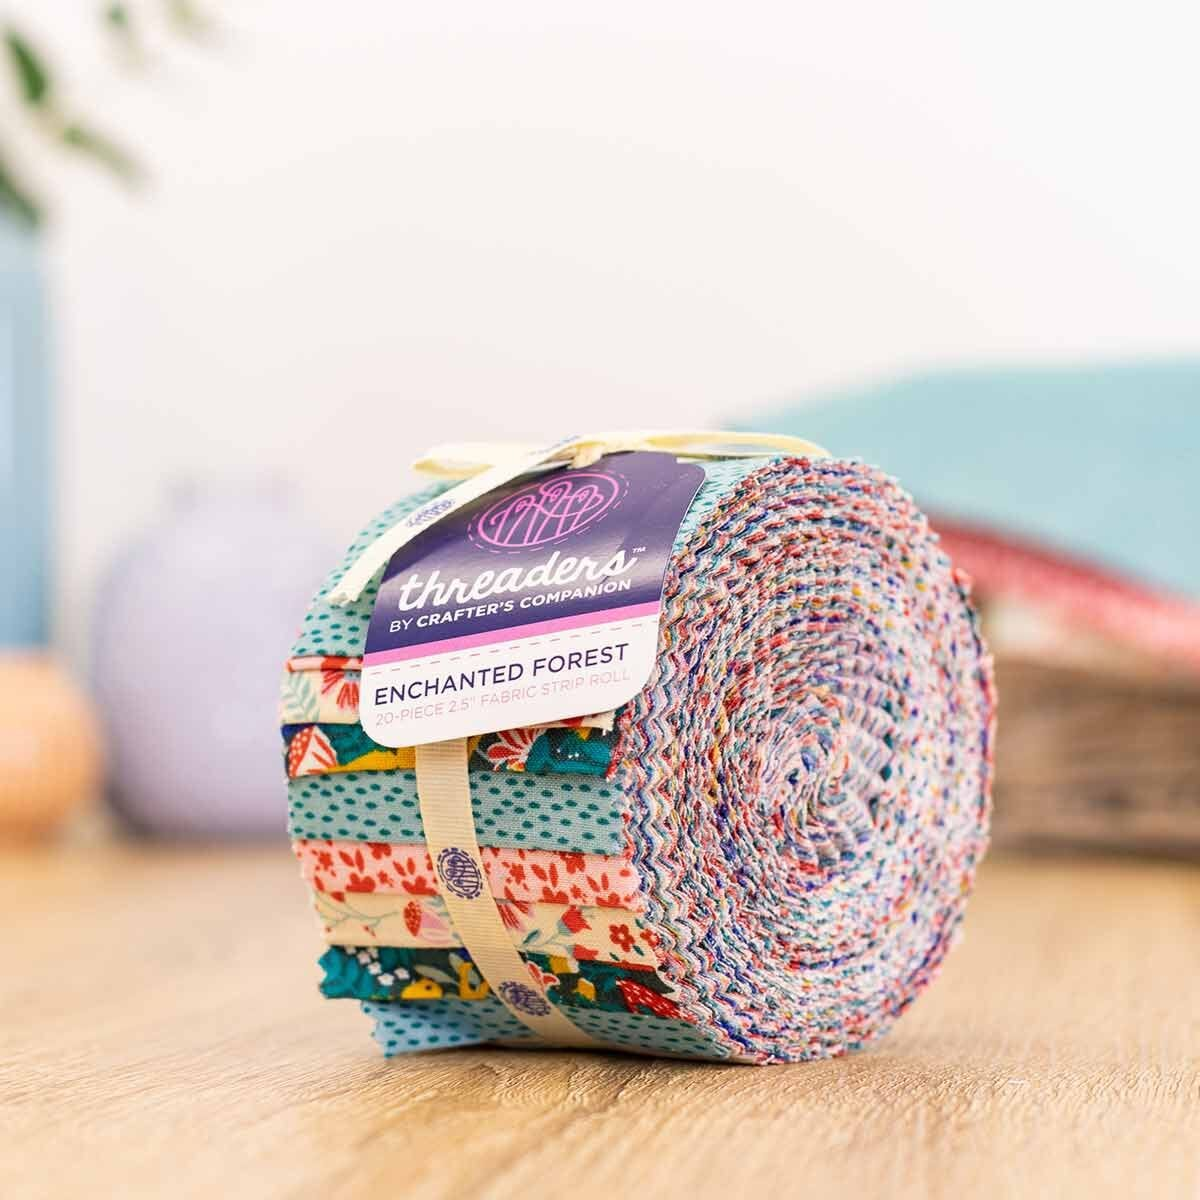 Crafters Companion Enchanted Forest 20 Piece Fabric Strip Roll